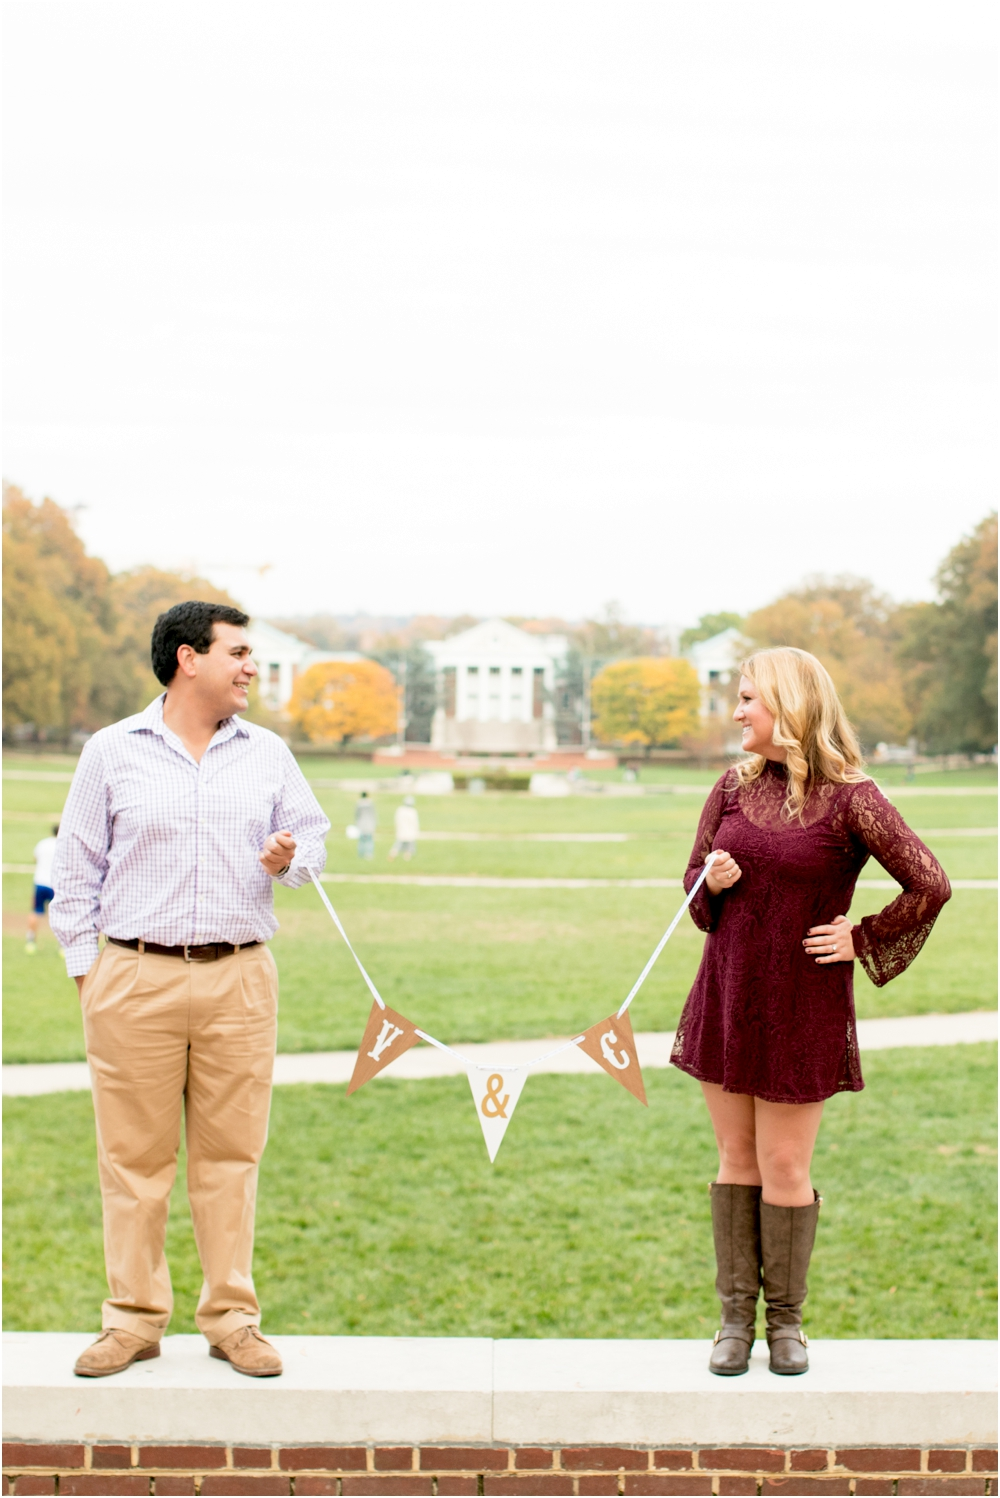 torie chris university of maryland engagement session living radiant photography_0022.jpg